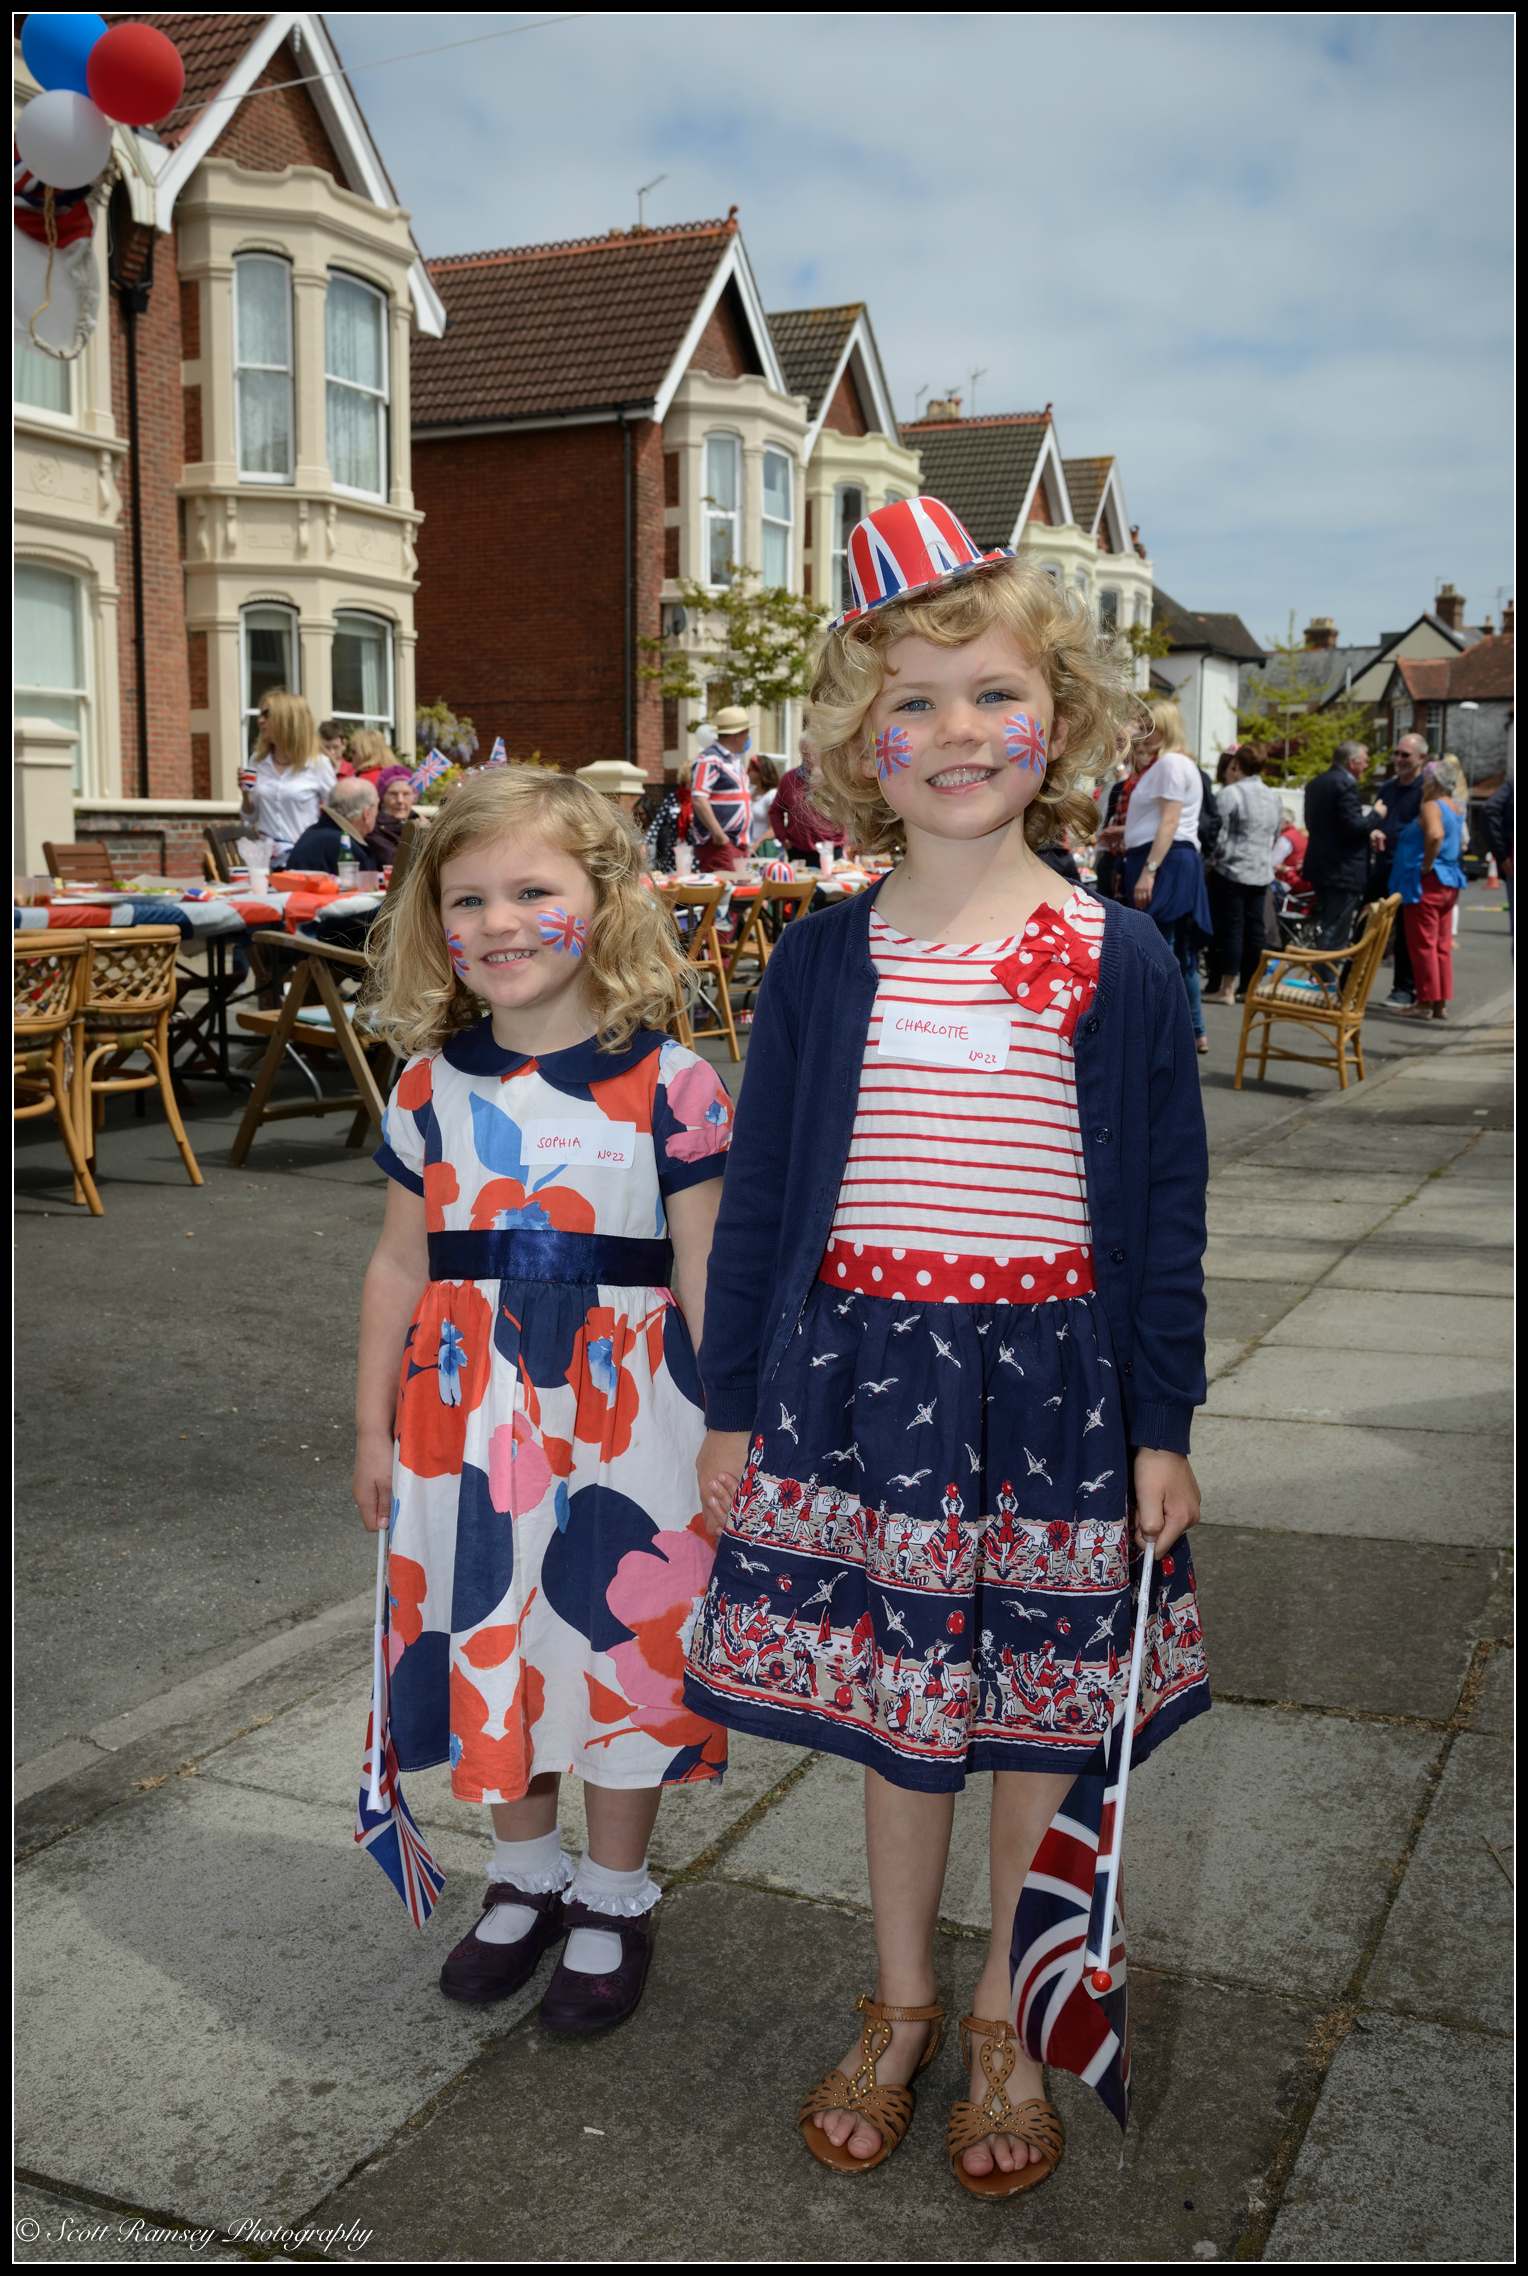 With painted faces, flagsand wearing their party dresses two girls pose for a photo during the VE Day 70th anniversary street party in Southsea, Portsmouth, UK. © Scott Ramsey Photography.